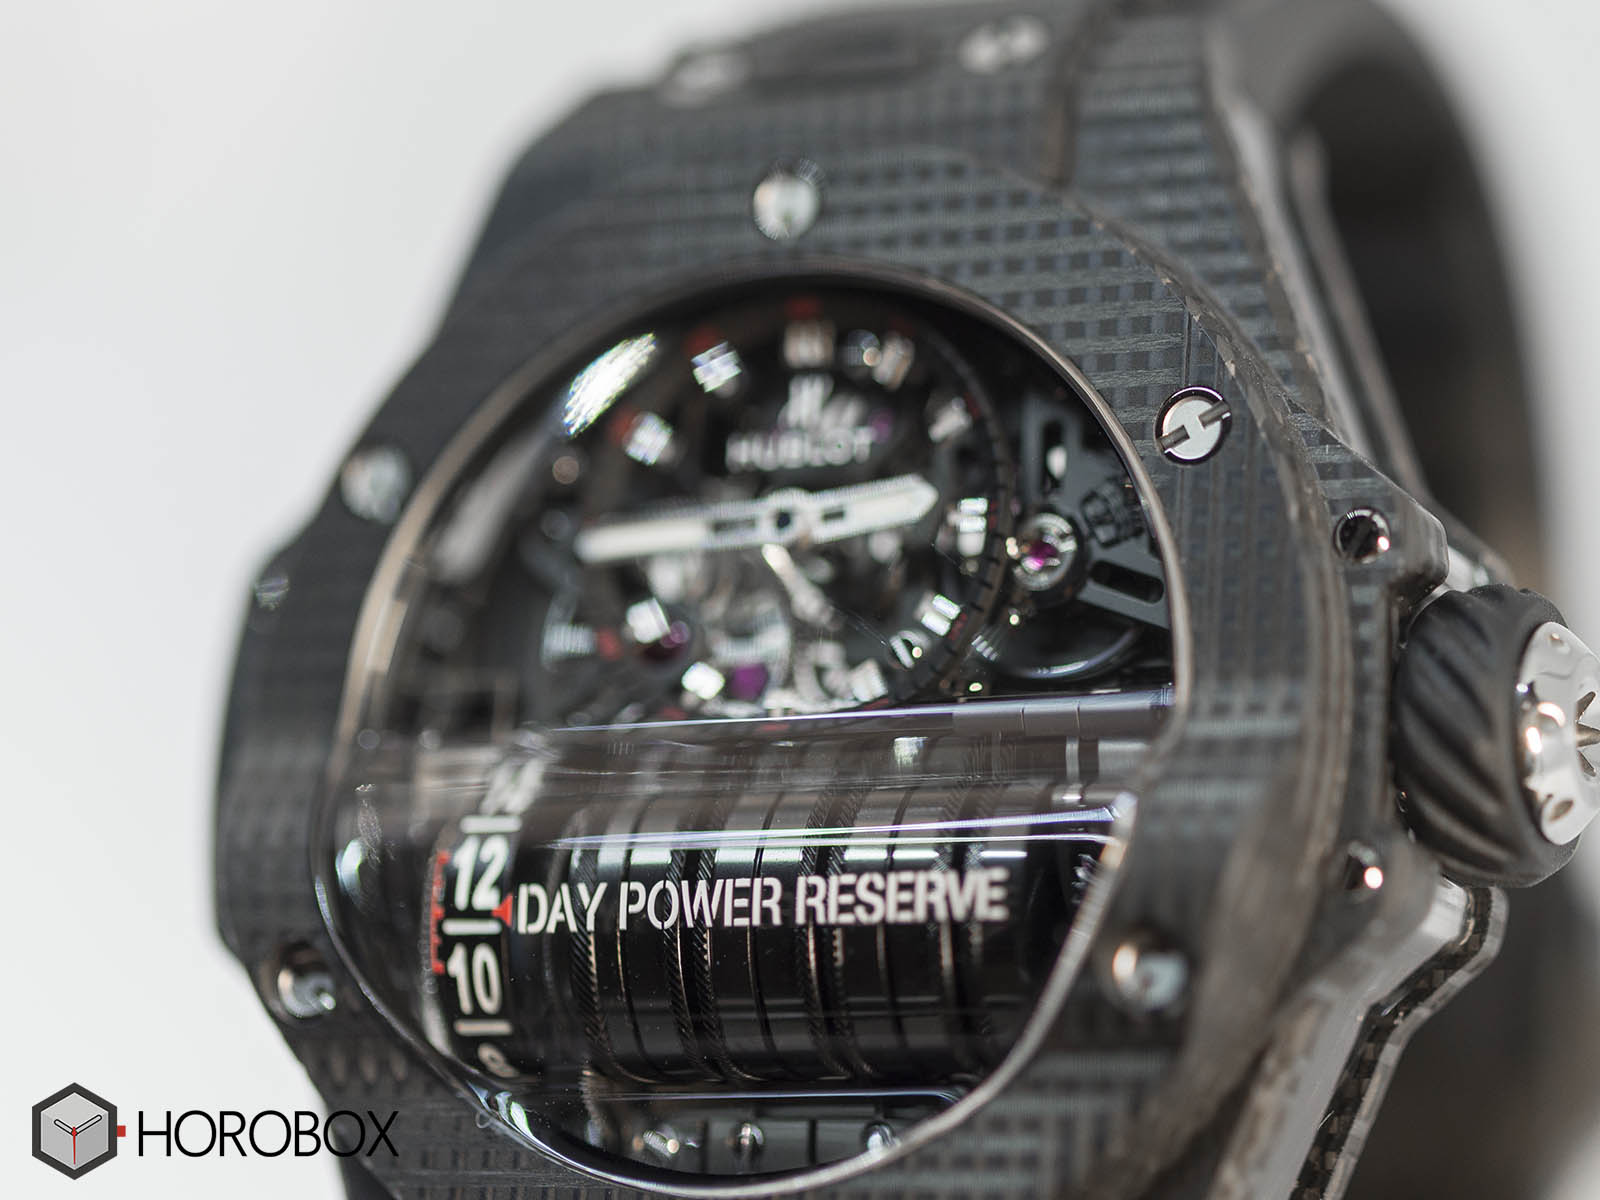 911-qd-0123-rx-hublot-mp-11-power-reserve-14-days-5.jpg